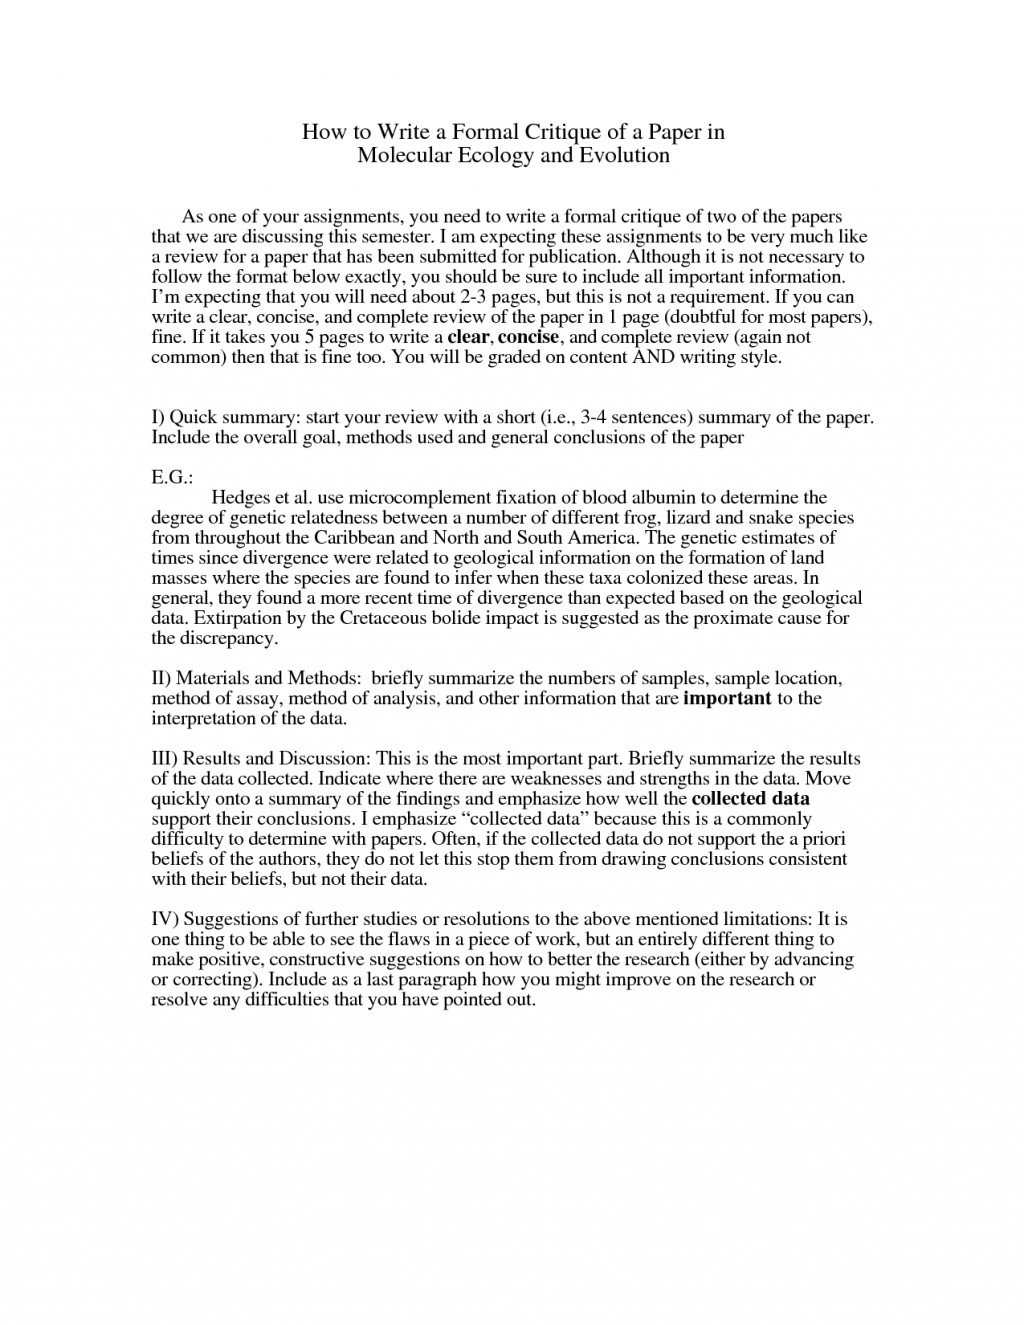 004 Essay Example Of Critique Best Photos Painting Hnlfv Write Fascinating Description Large